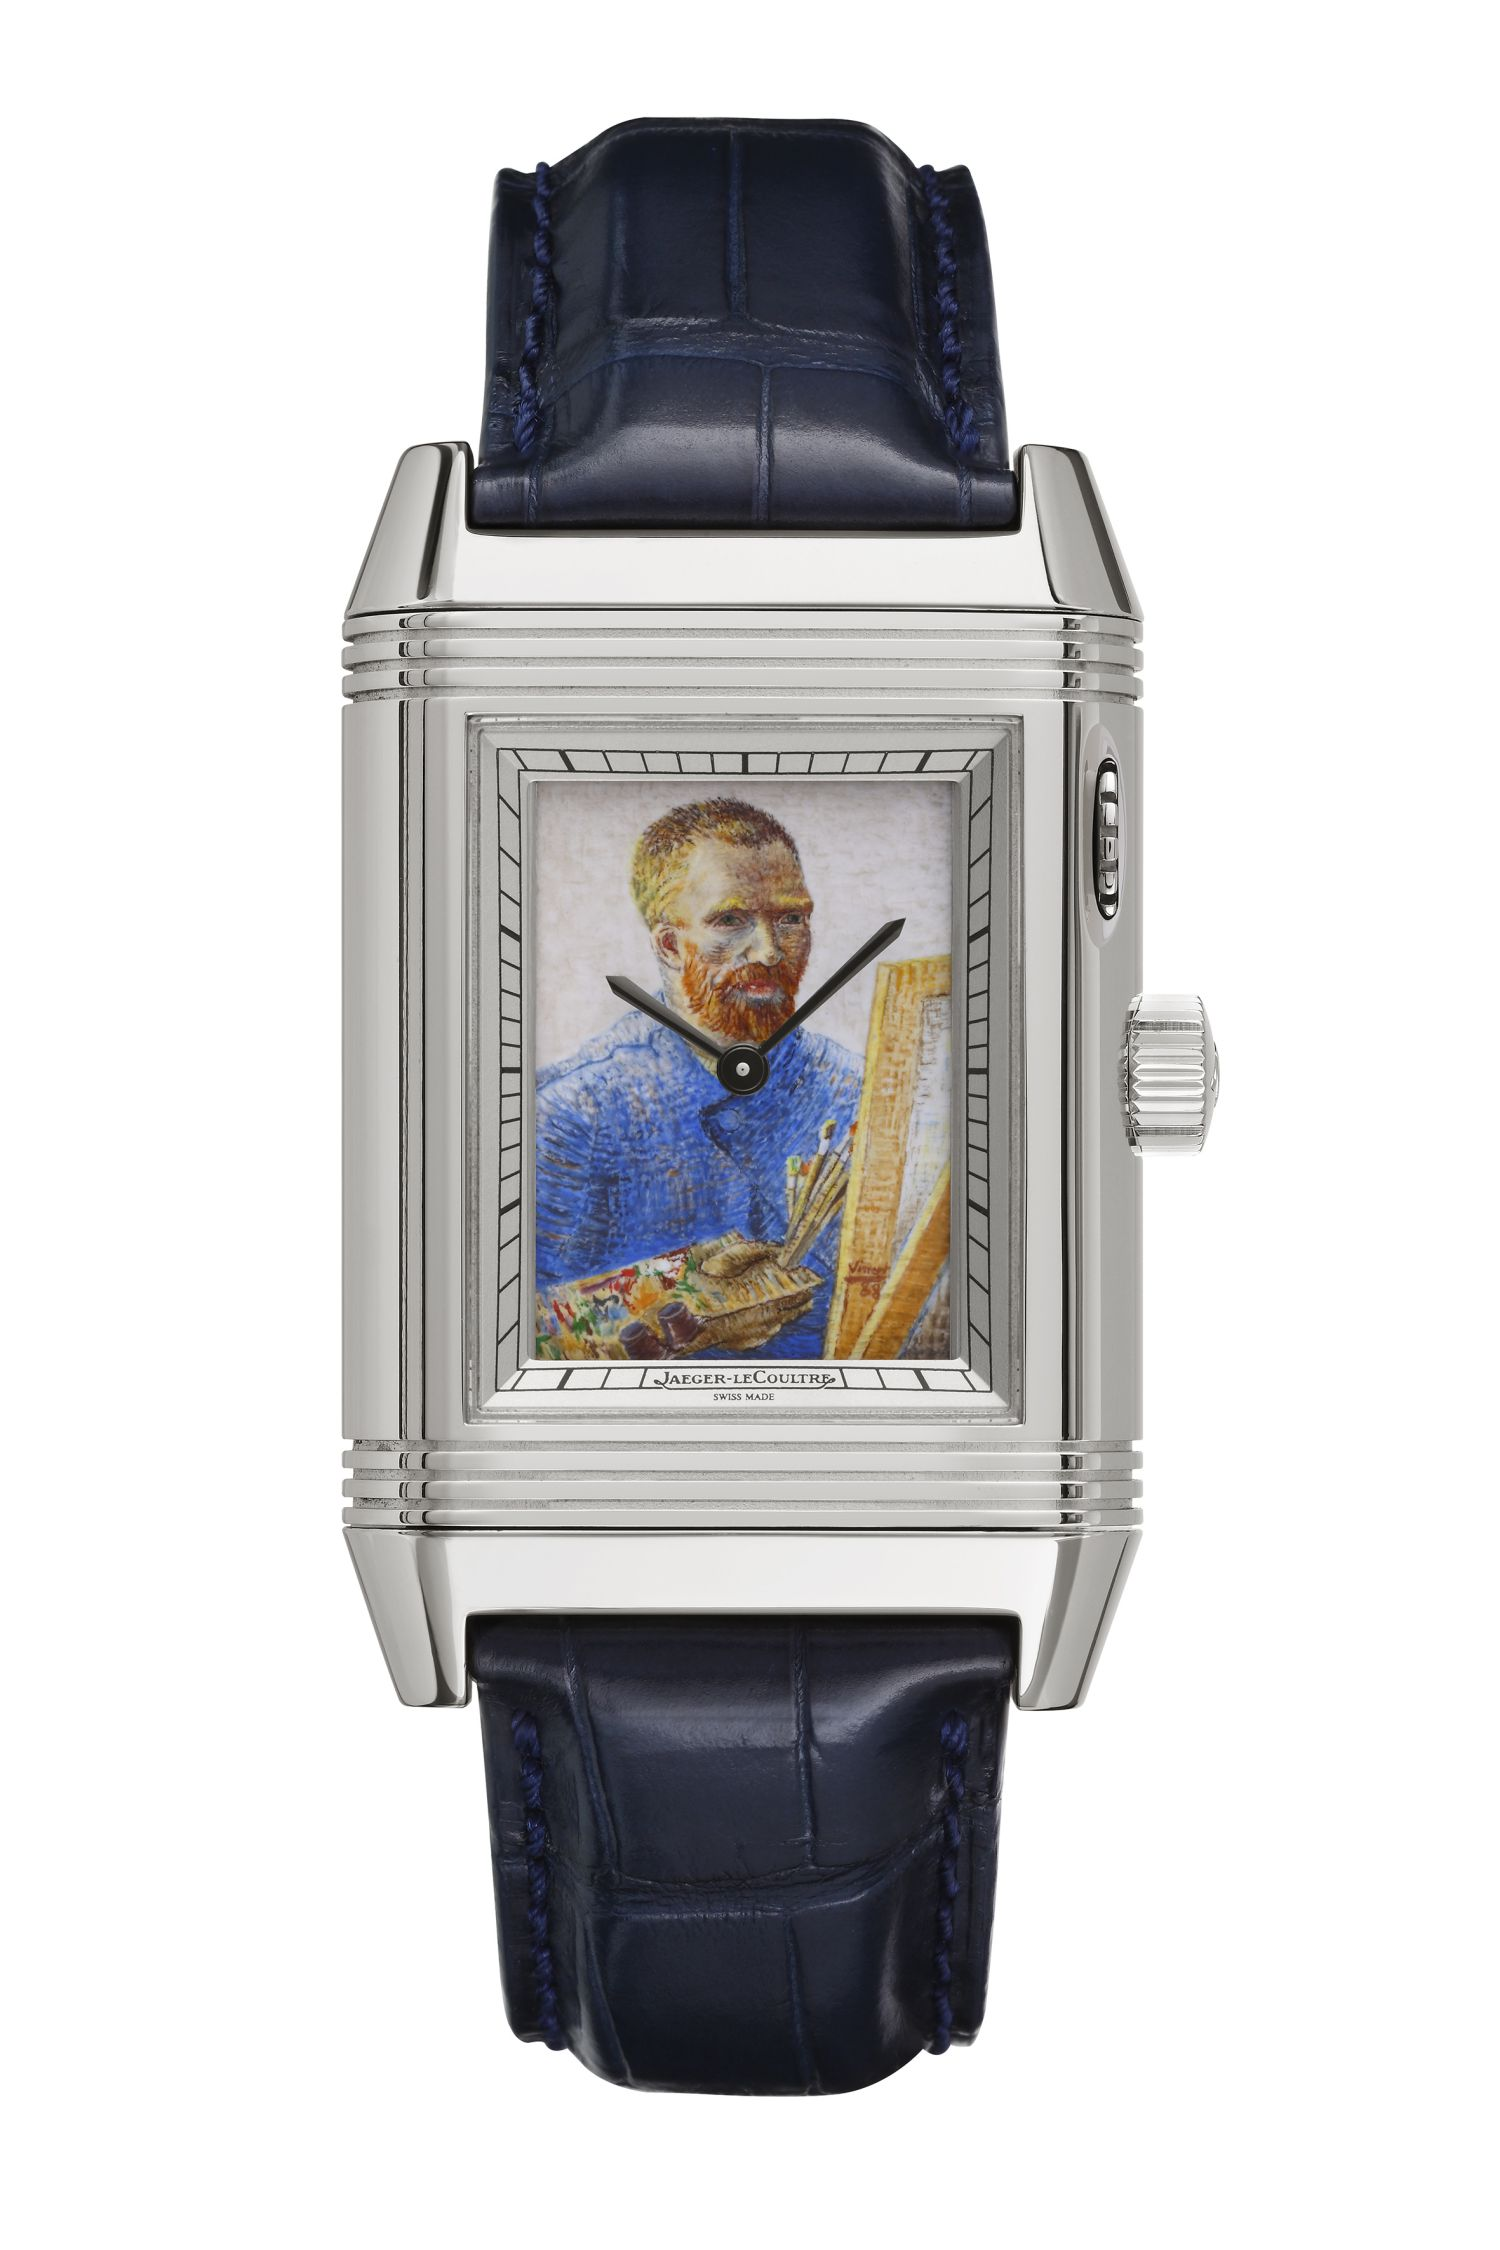 Jaeger-LeCoultre-Reverso-Tribute-to-Vincent-van-Gogh-4.jpg